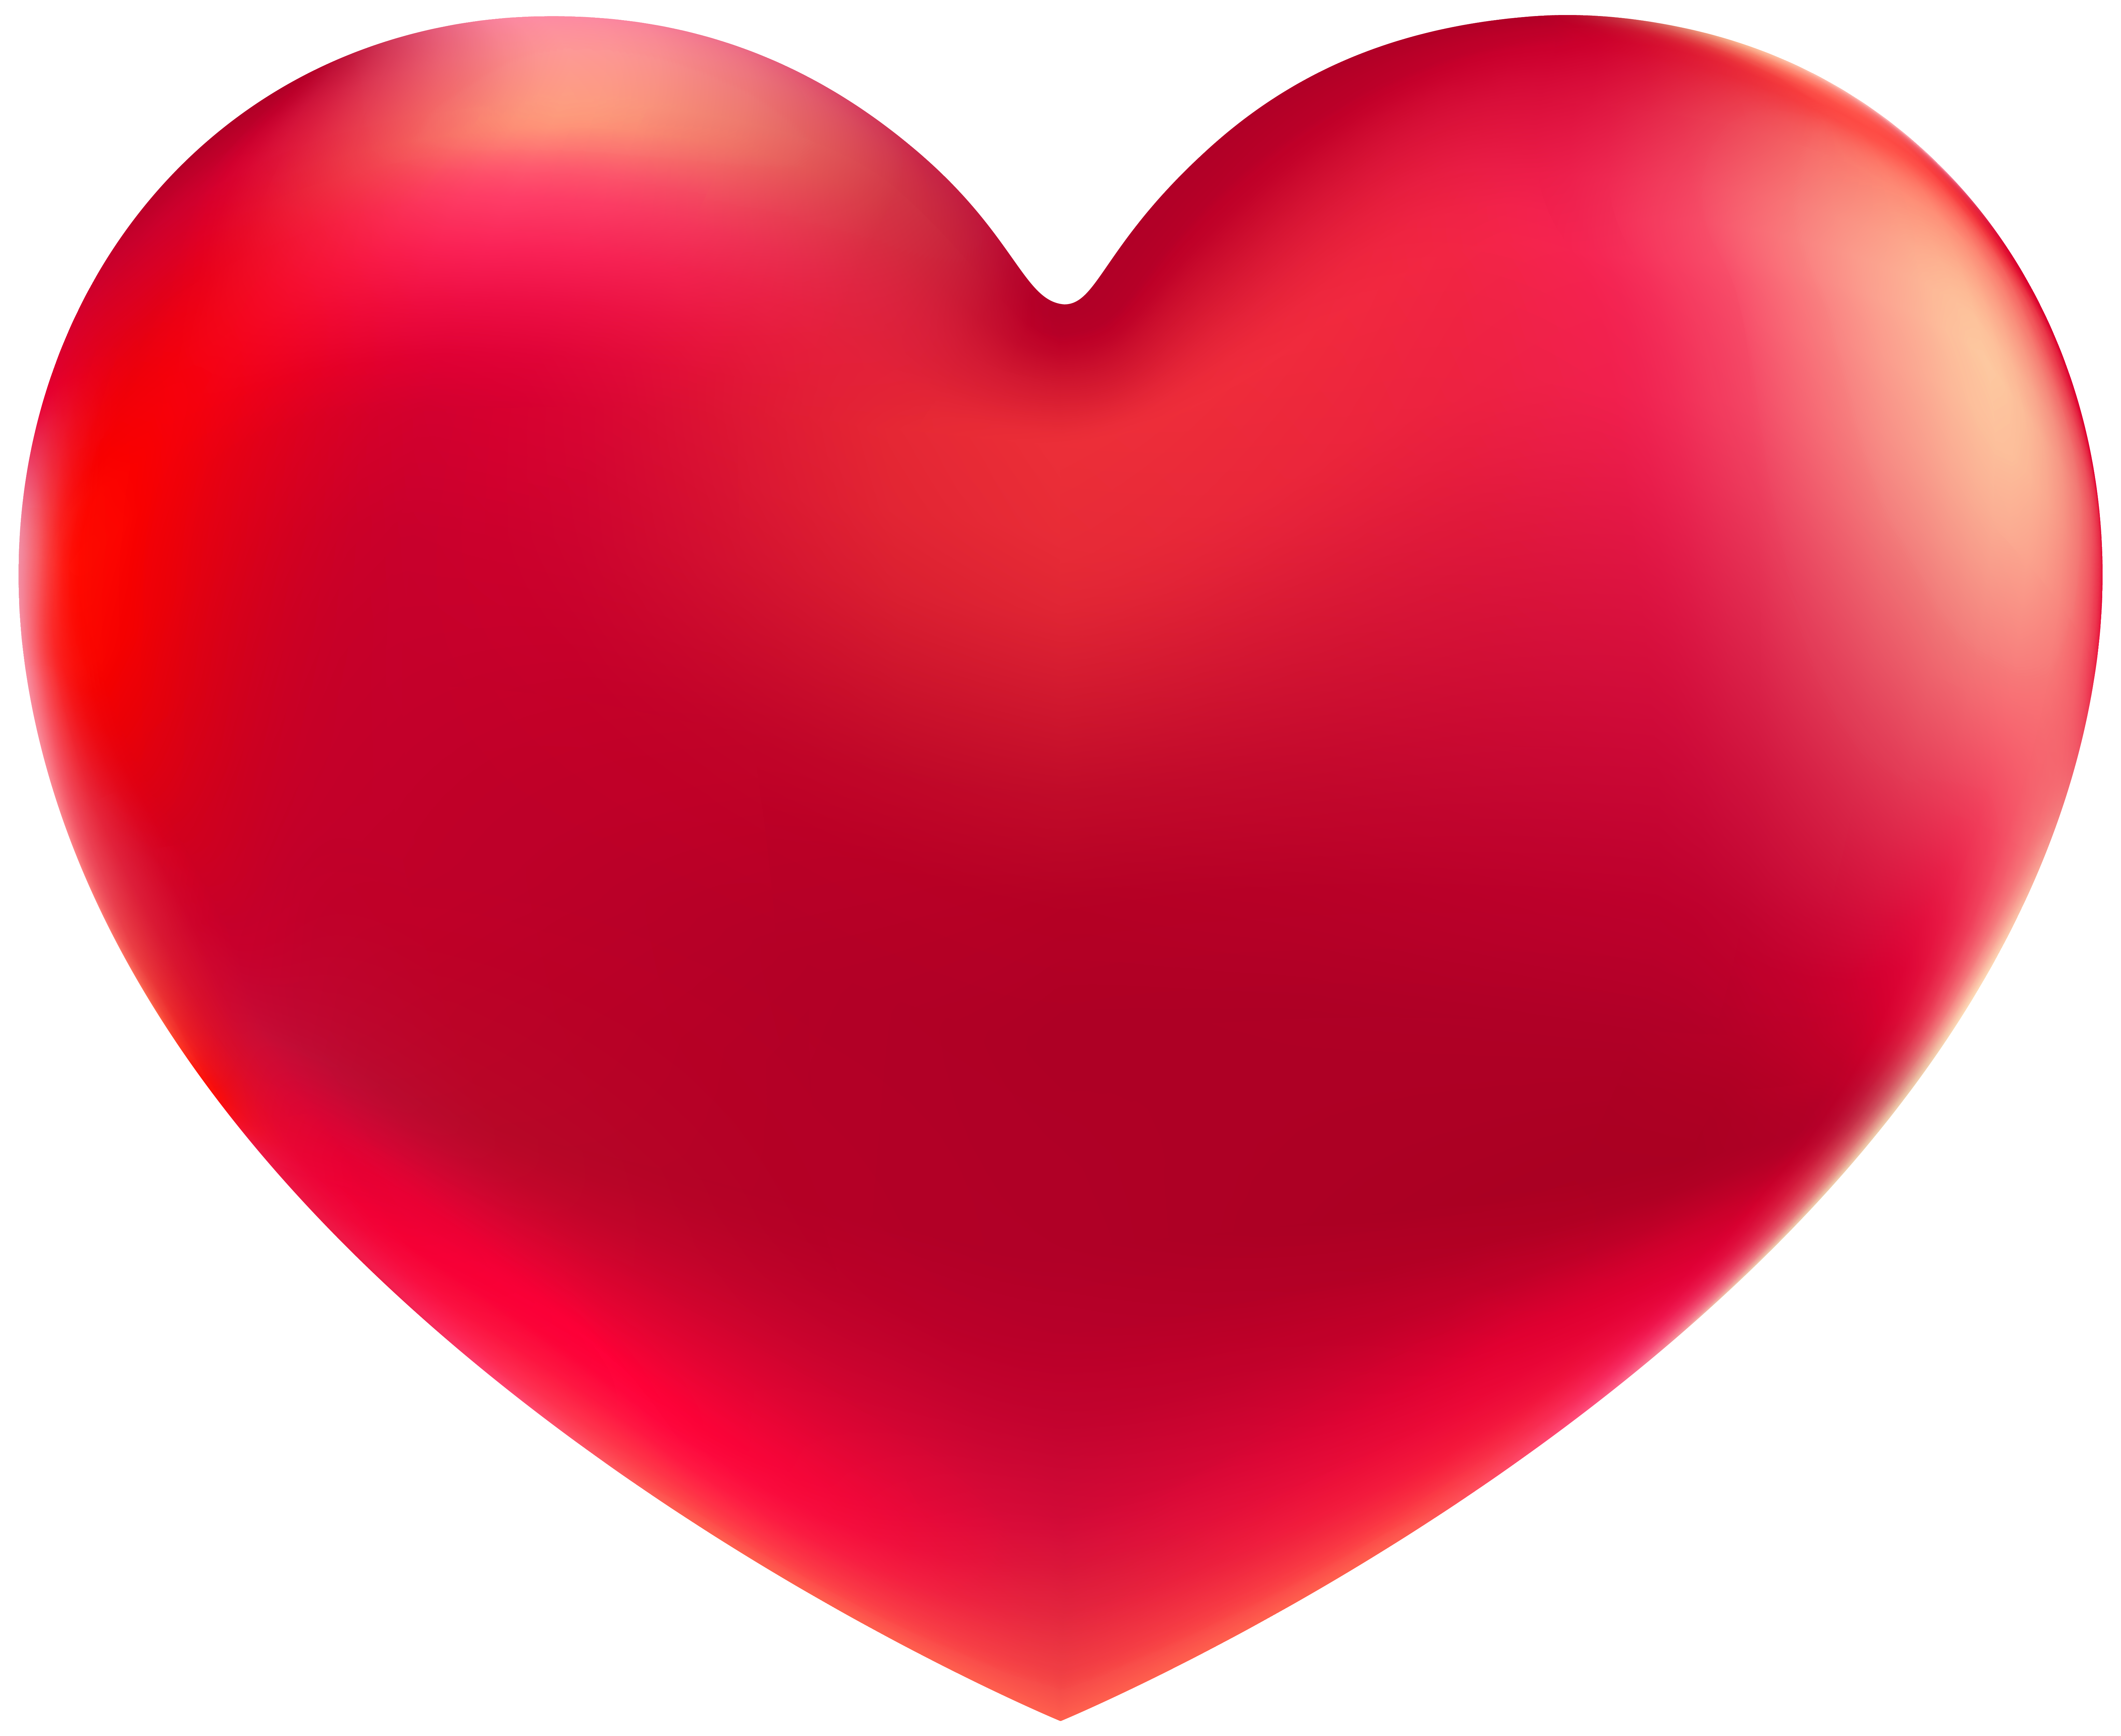 Red Heart Png Clipart Image Clip Art Red Heart Free Clip Art